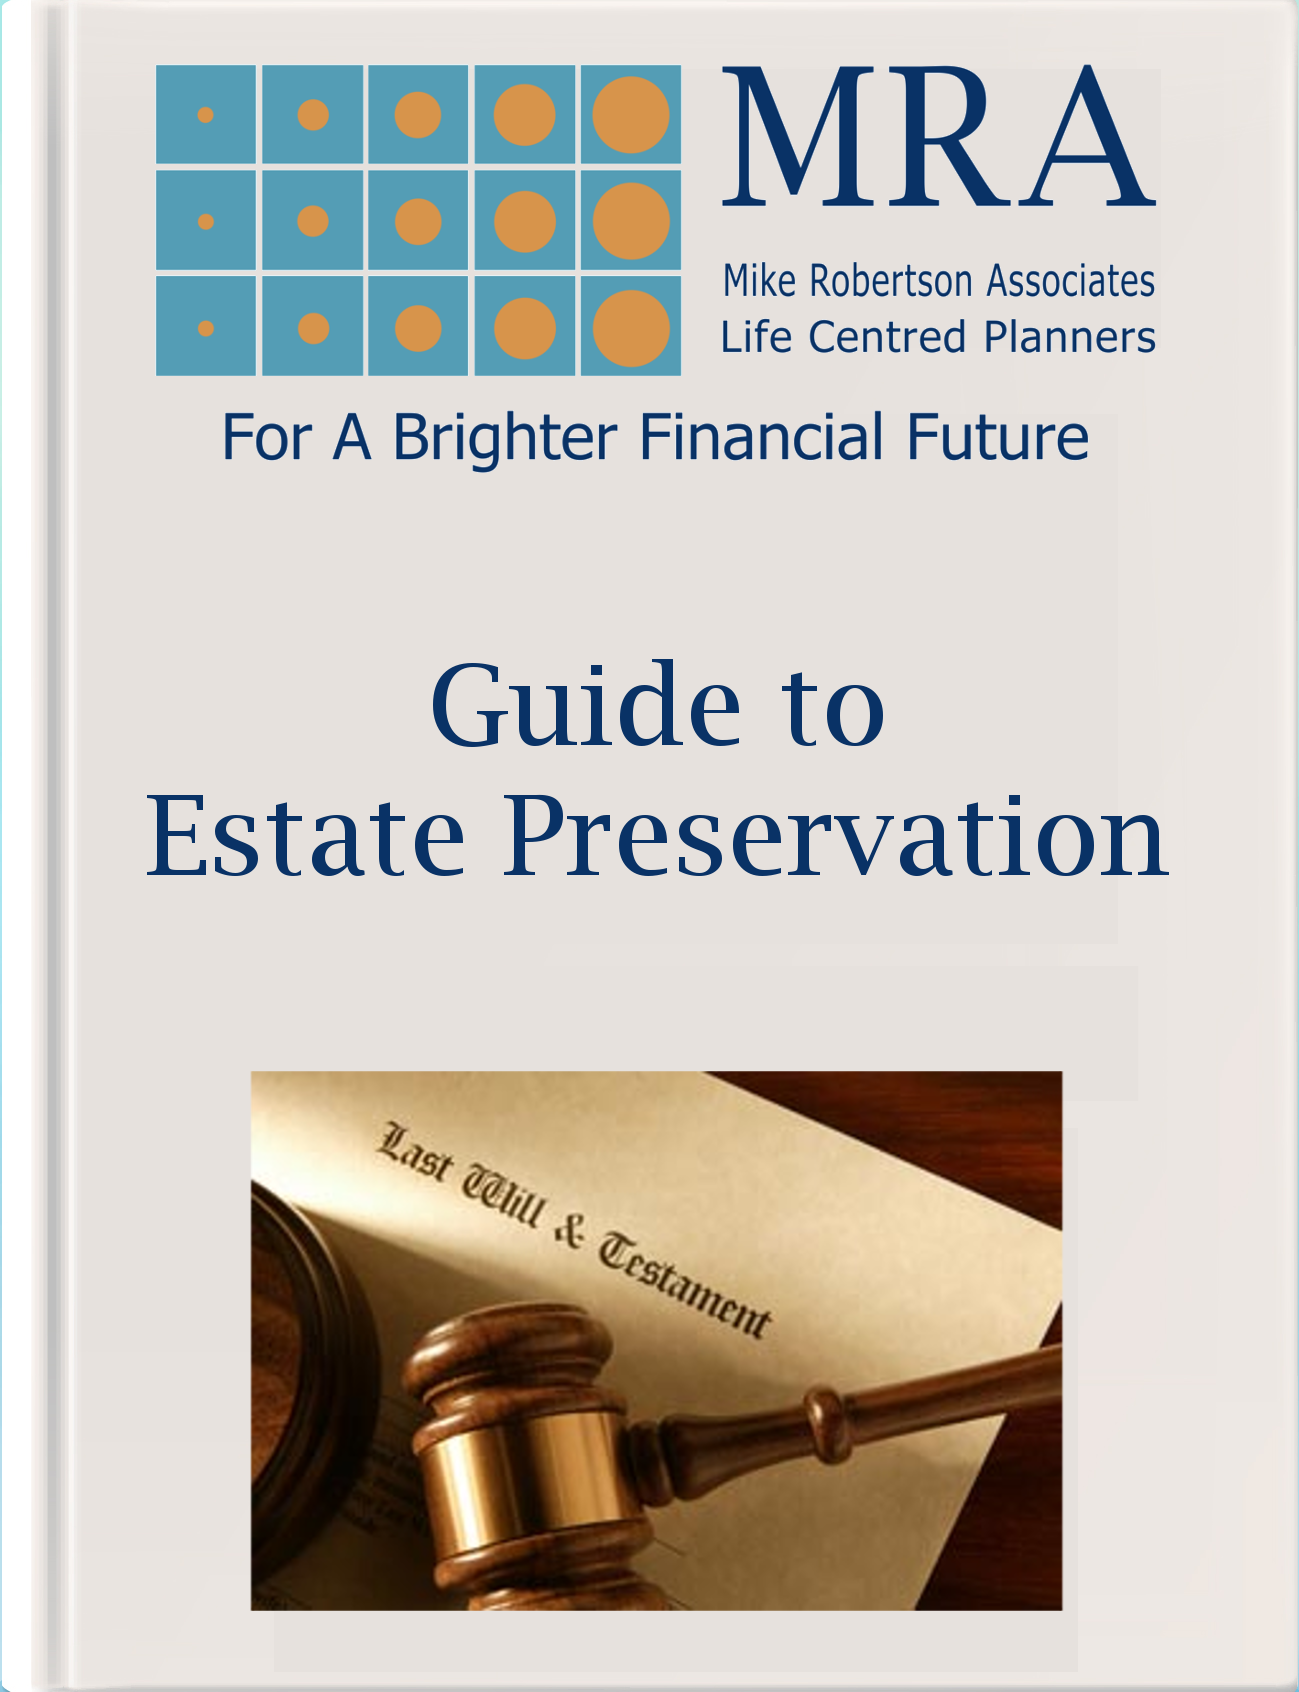 Download our Guide to Estate Preservation